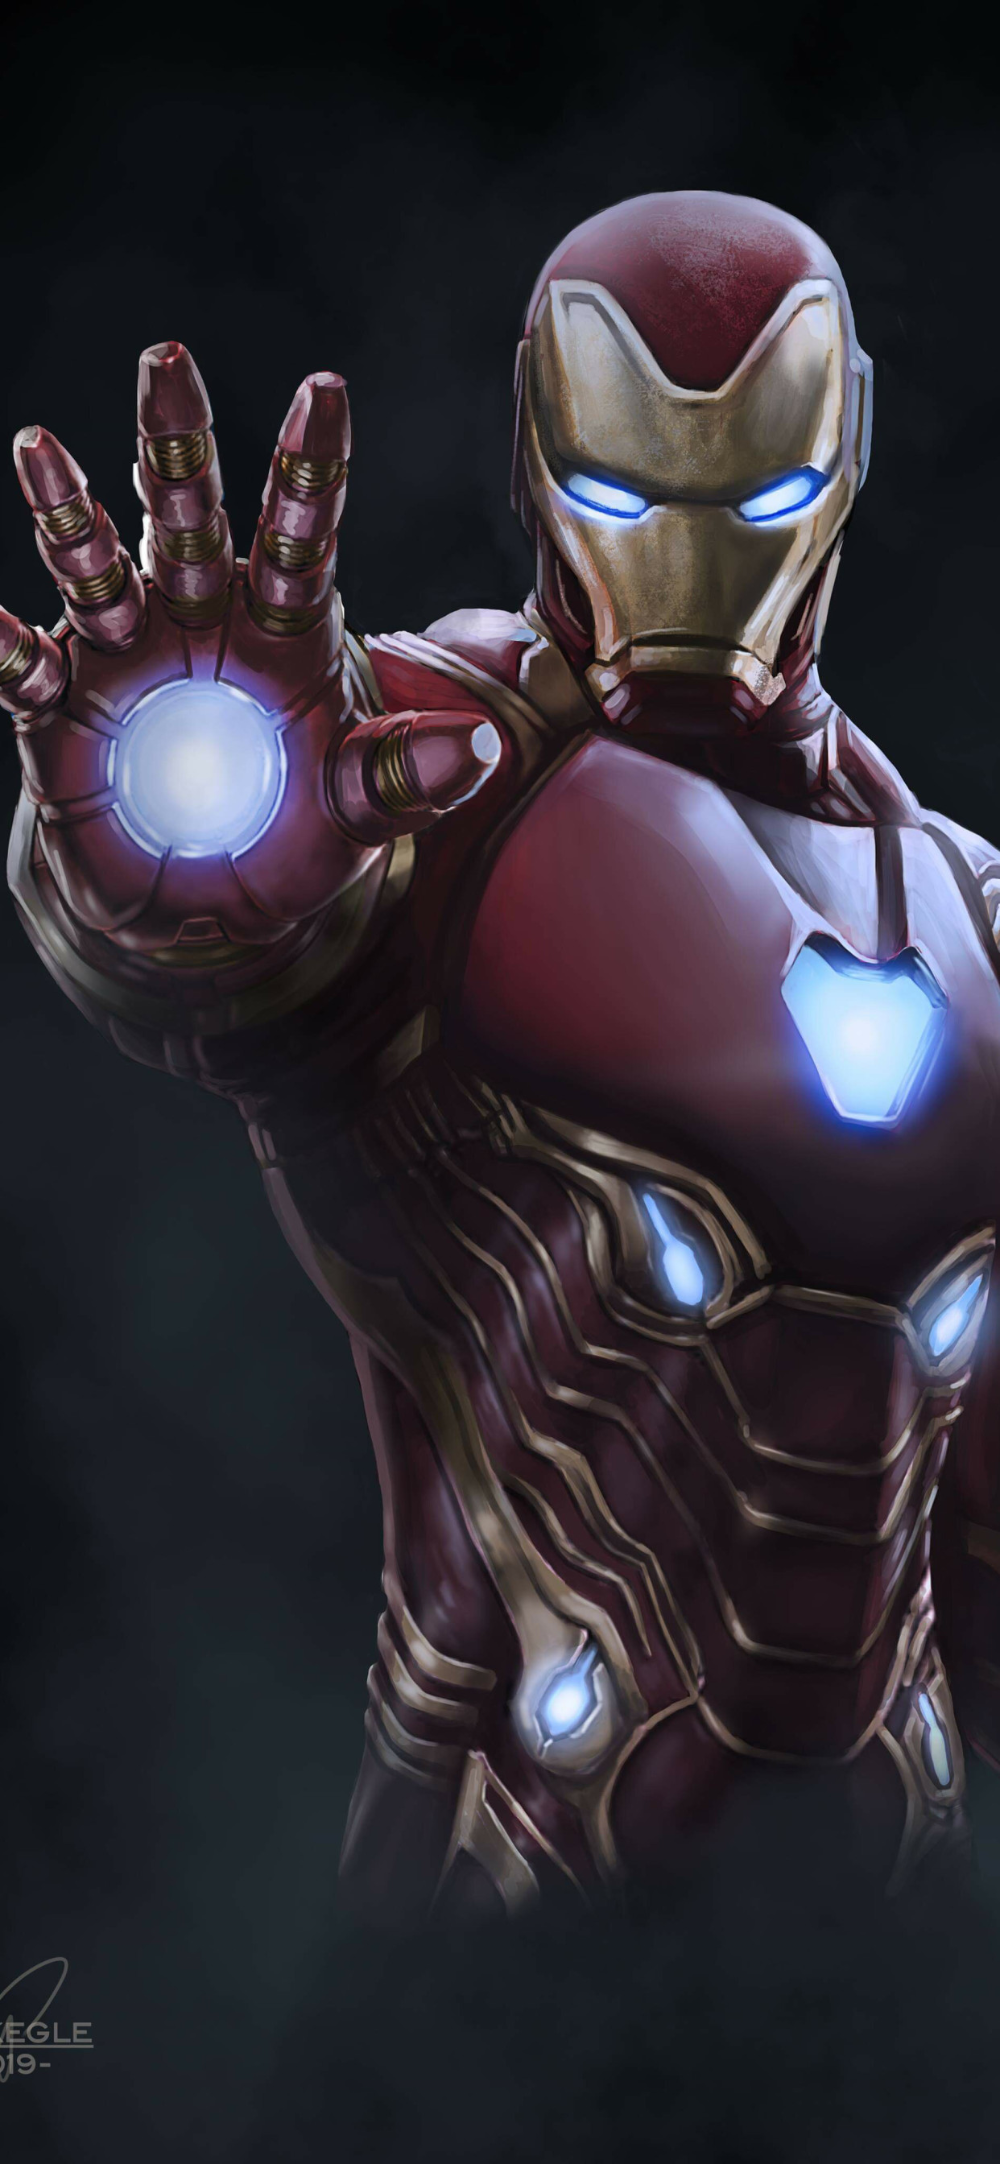 Iron Man Wallpaper Hd For Iphone Xs Max